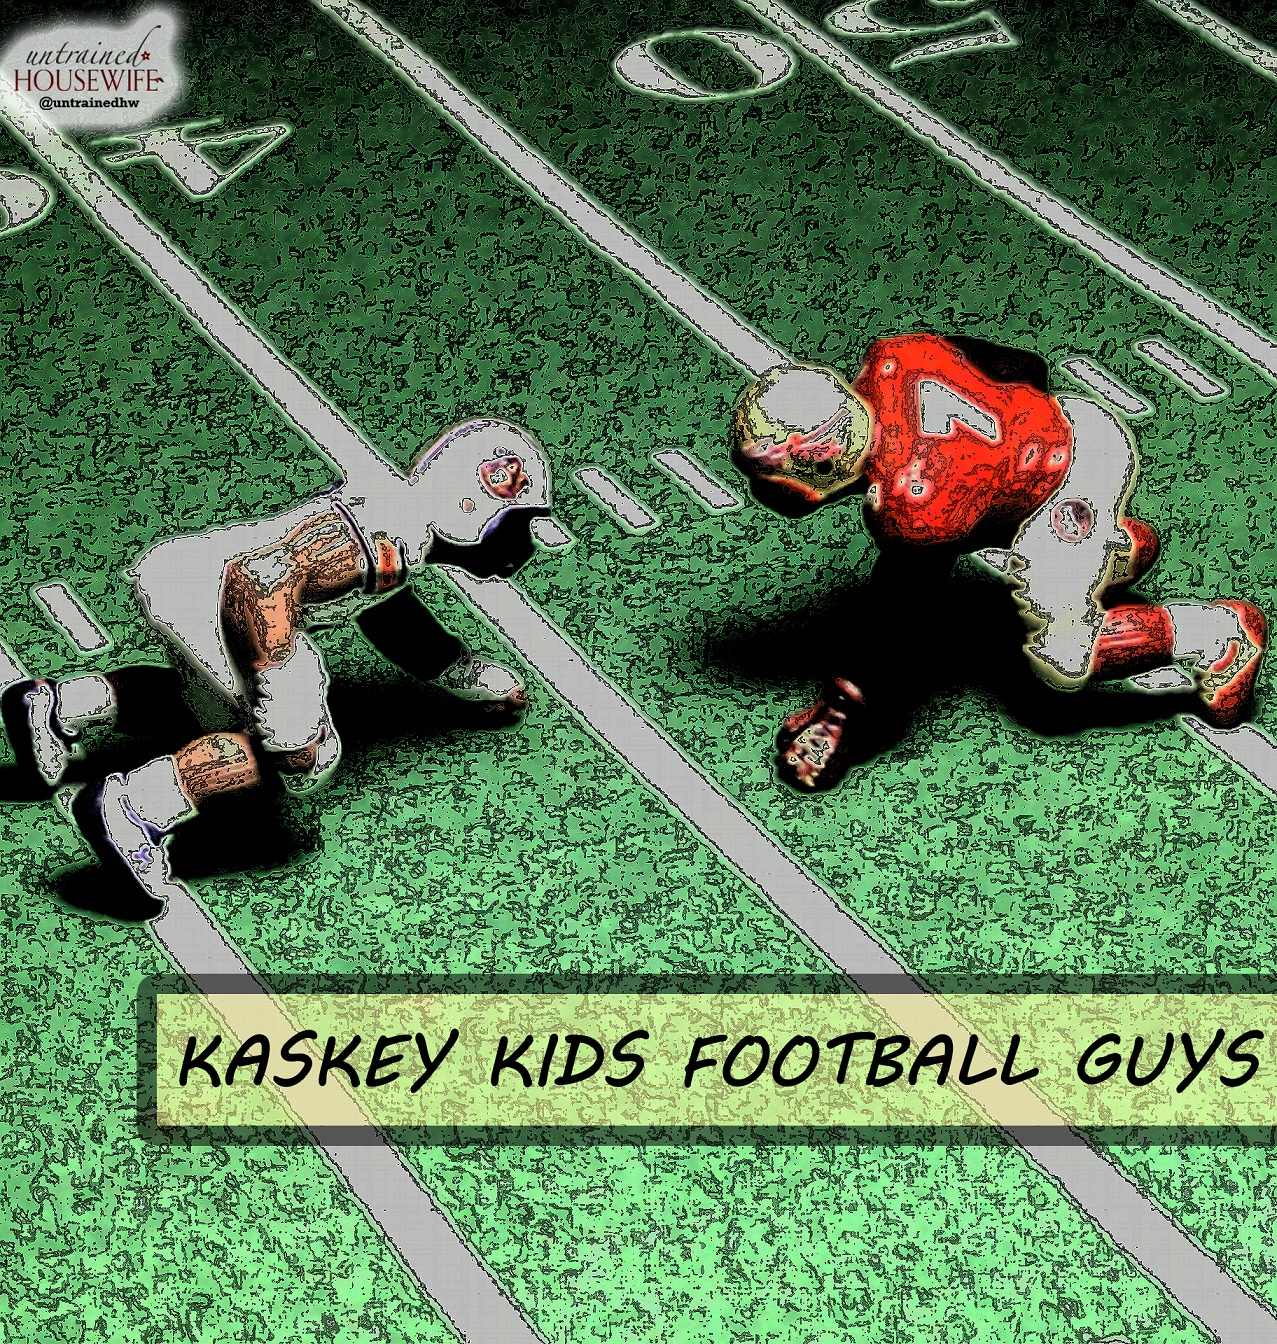 Football Players Toys For Toddlers : Review of kaskey kids football guys